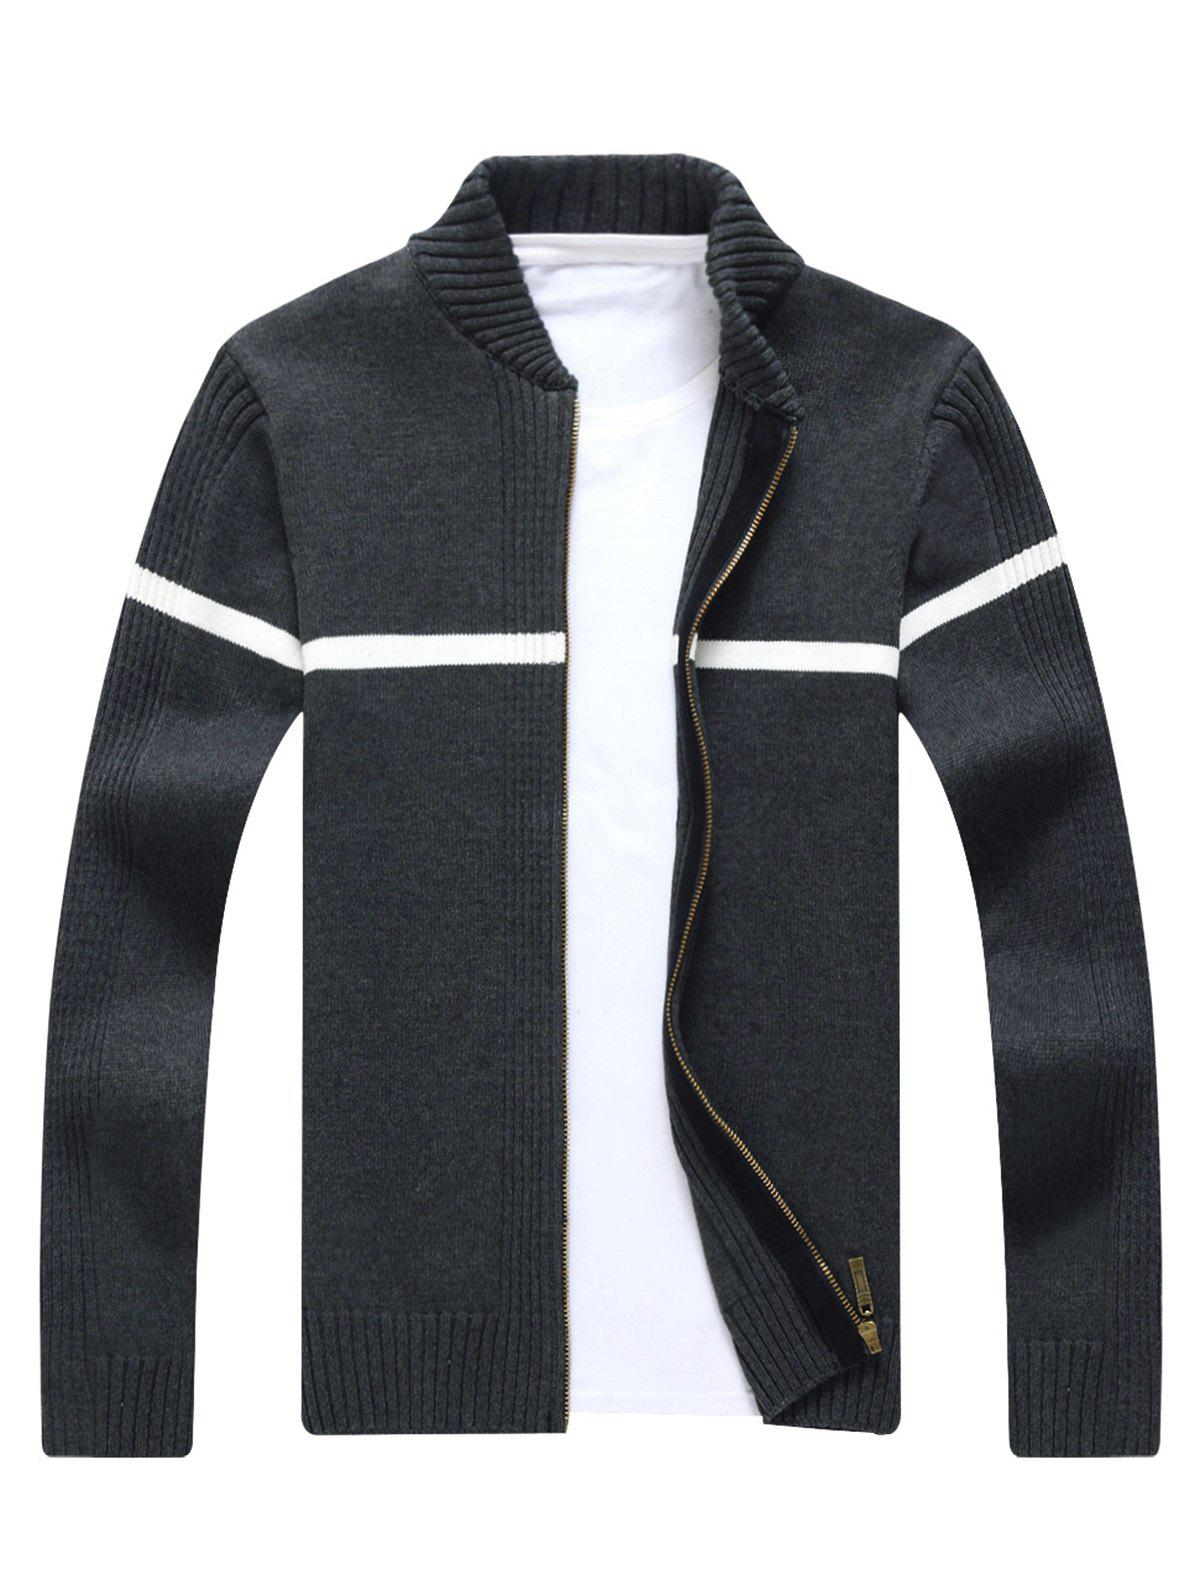 Ribbed Single Stripe Zip Up Cardigan - GRAY XL